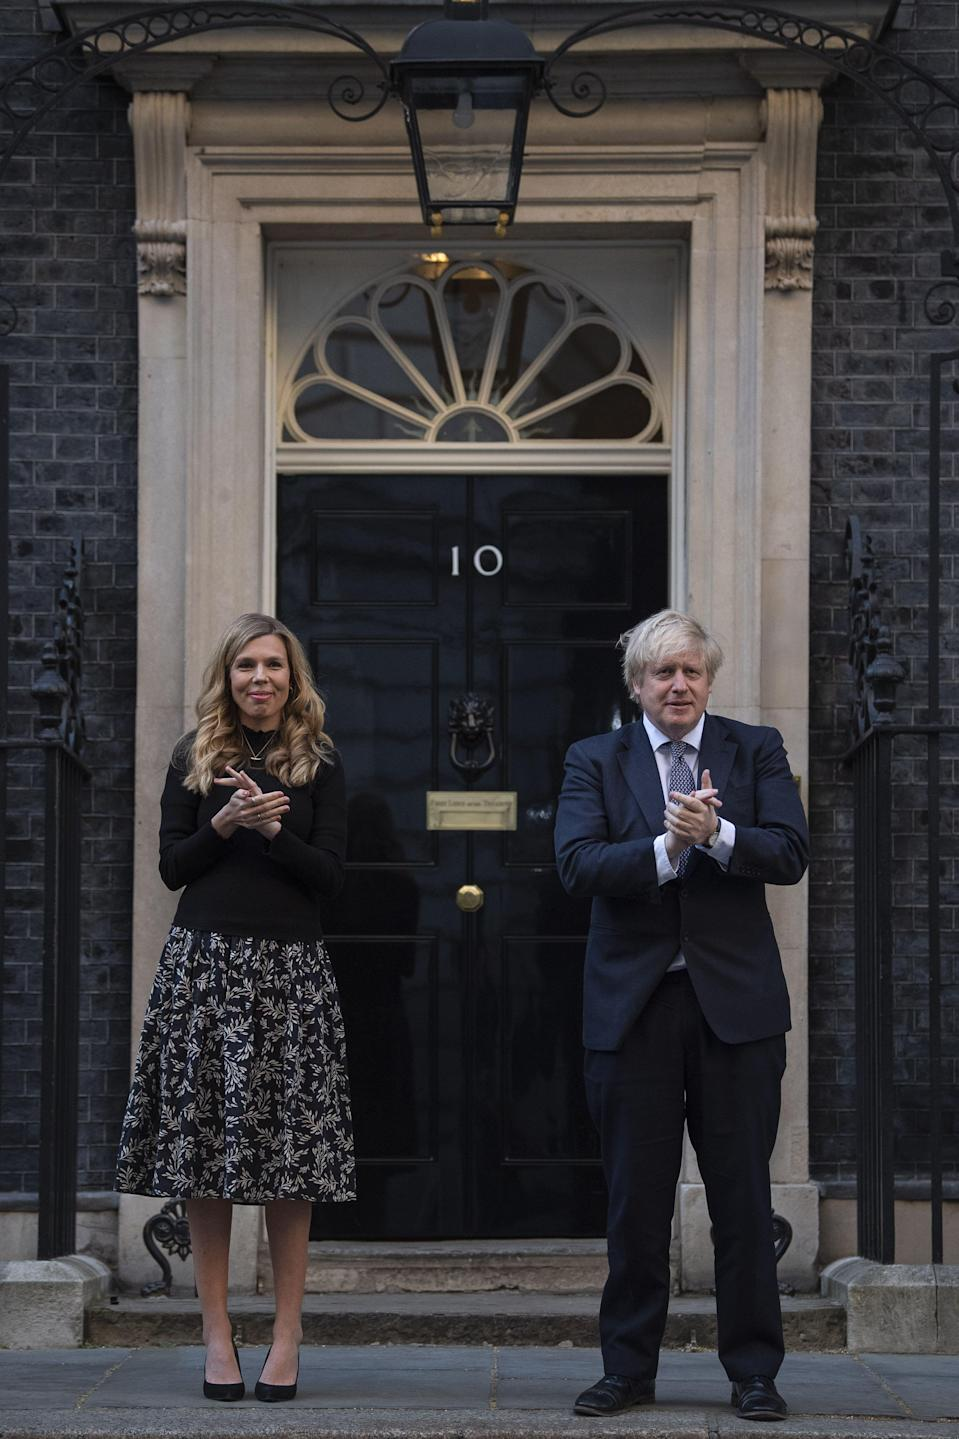 Boris Johnson and Carrie Symonds stand in Downing Street, London, to join in the applause to salute local heroes during the nationwide Clap for Carers to recognise and support NHS workers and carers fighting the coronavirus pandemic (Photo: Victoria Jones/PA Images)